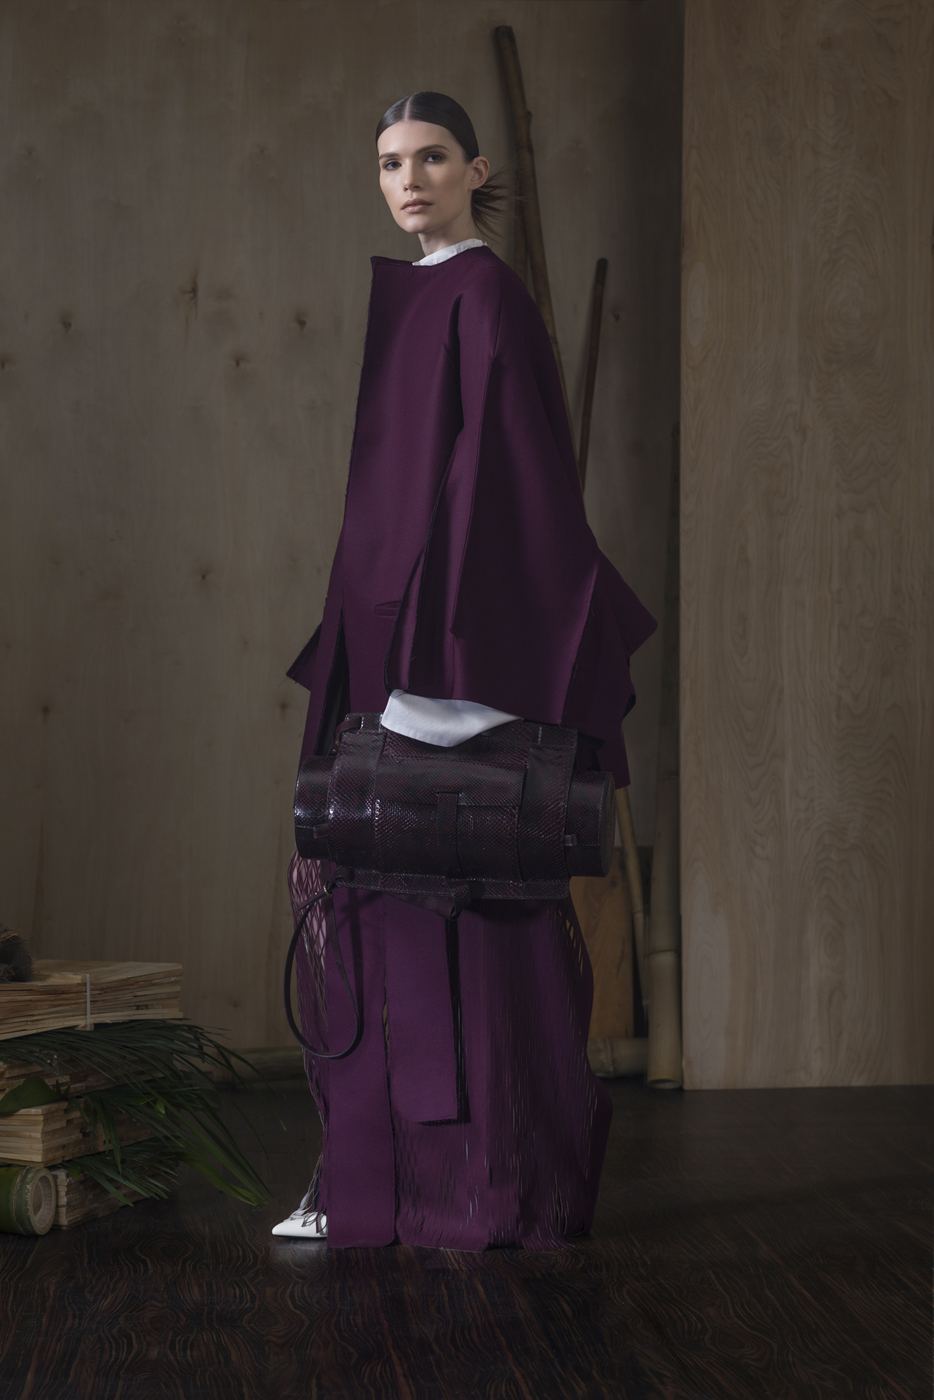 Oxford Cotton Super Slitted Long SLV Blouse  Paired With  Plum Super Slitted Laser Cut RAW Skirt and Plum Double Bonded Wool Over-Coat. Plum All Python & Suede Utility Bag.